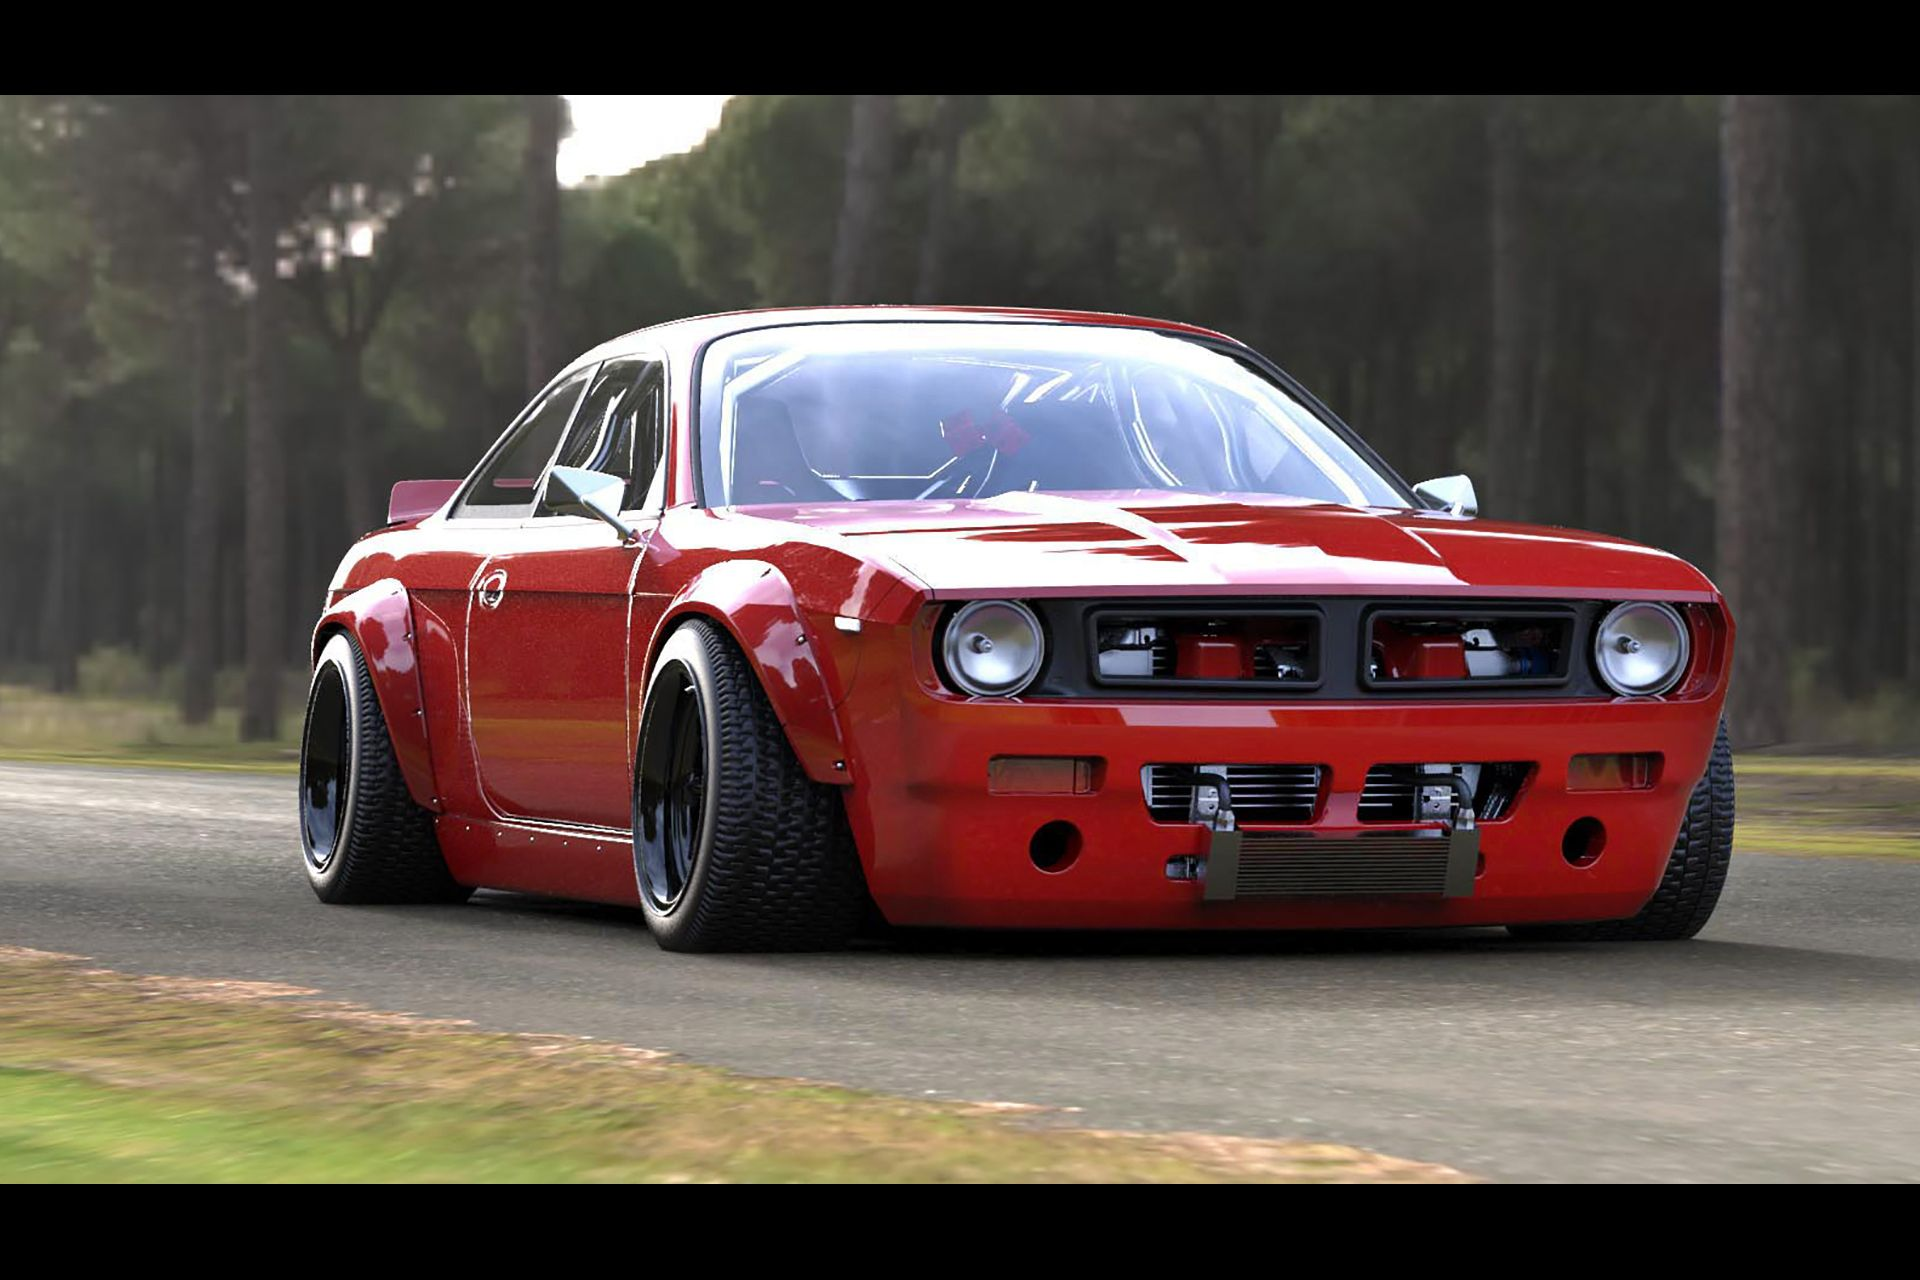 rocket bunny s14 v2 boss aero kit preorder sale zilvia net forums nissan 240sx silvia and z fairlady car forum [ 1920 x 1280 Pixel ]